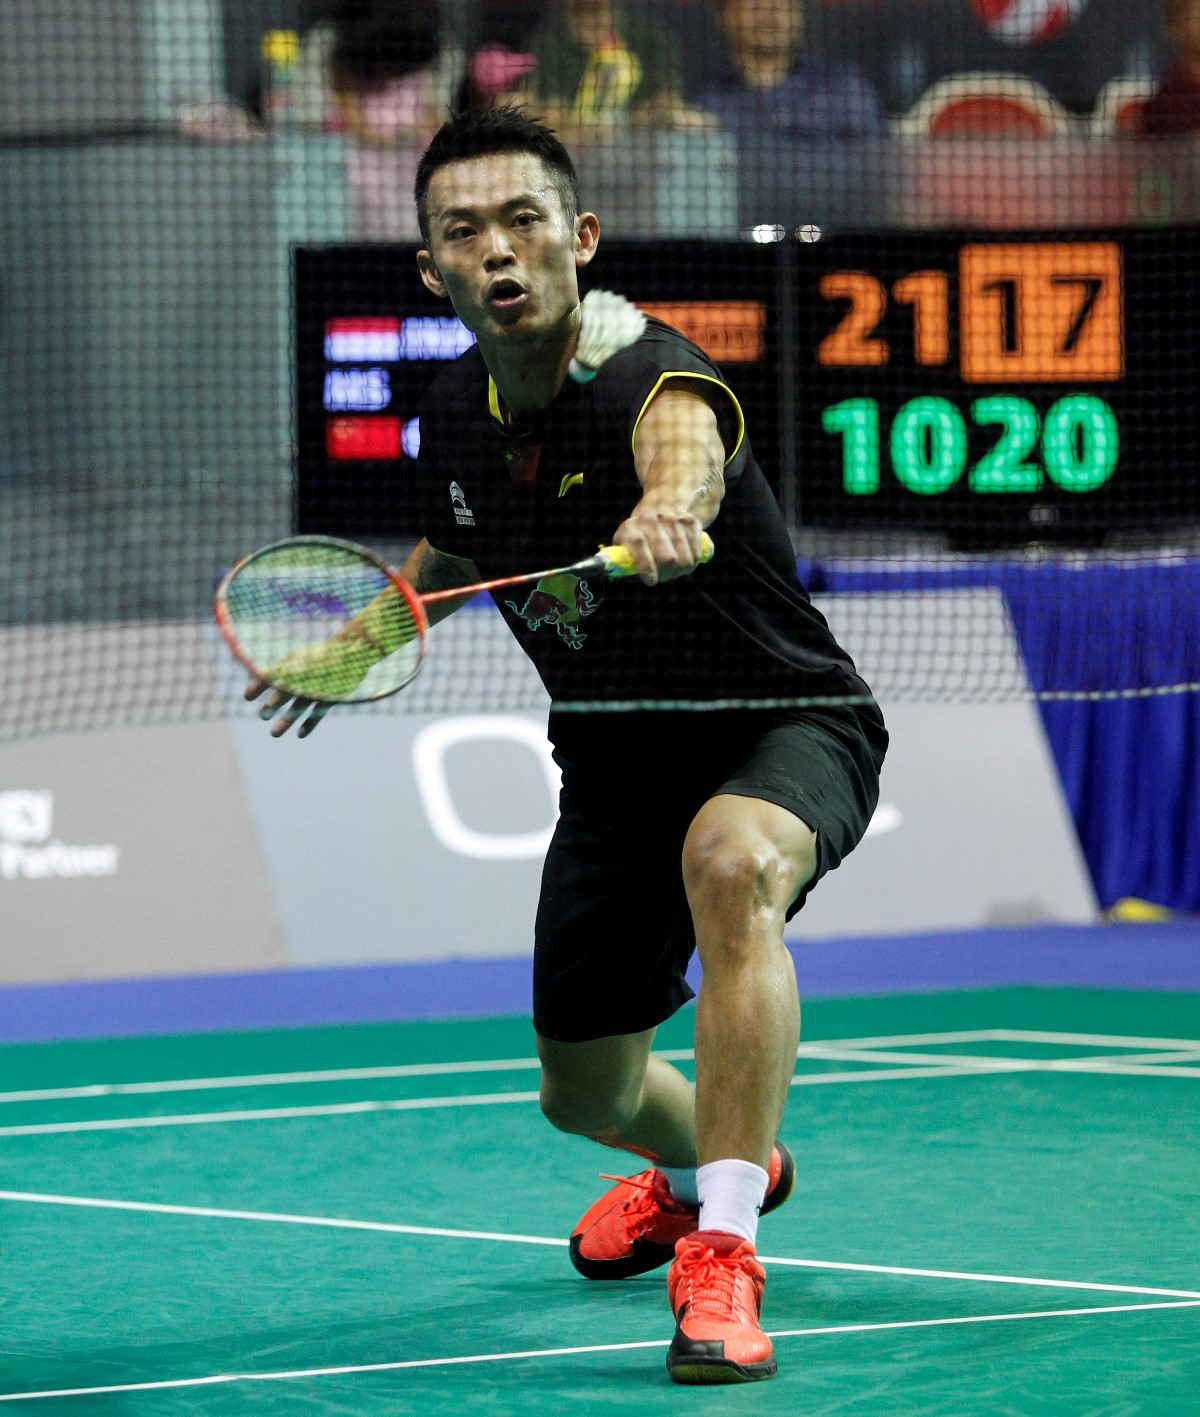 Singapore Open 2016 - Day 5 - Lin Dan of China